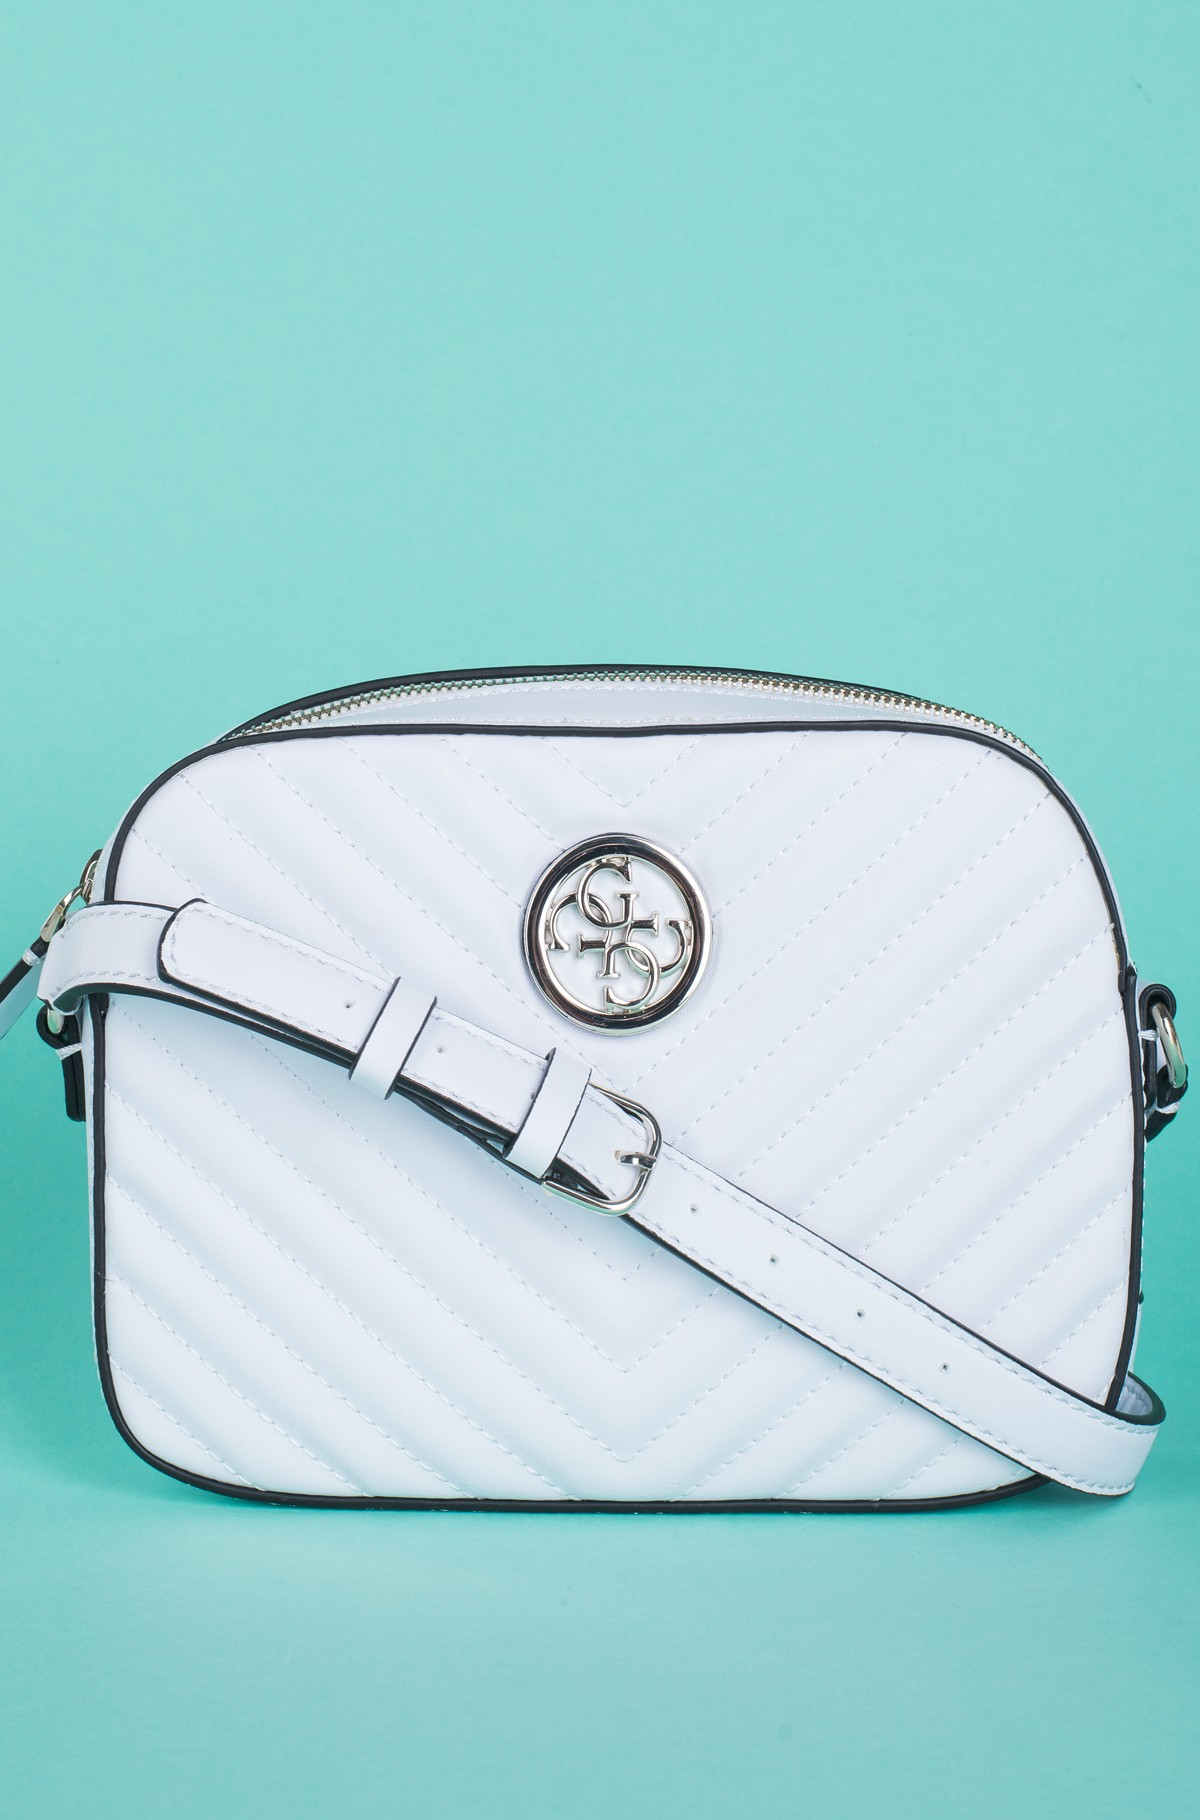 Shoulder bag HWBQ66 91120-full-1